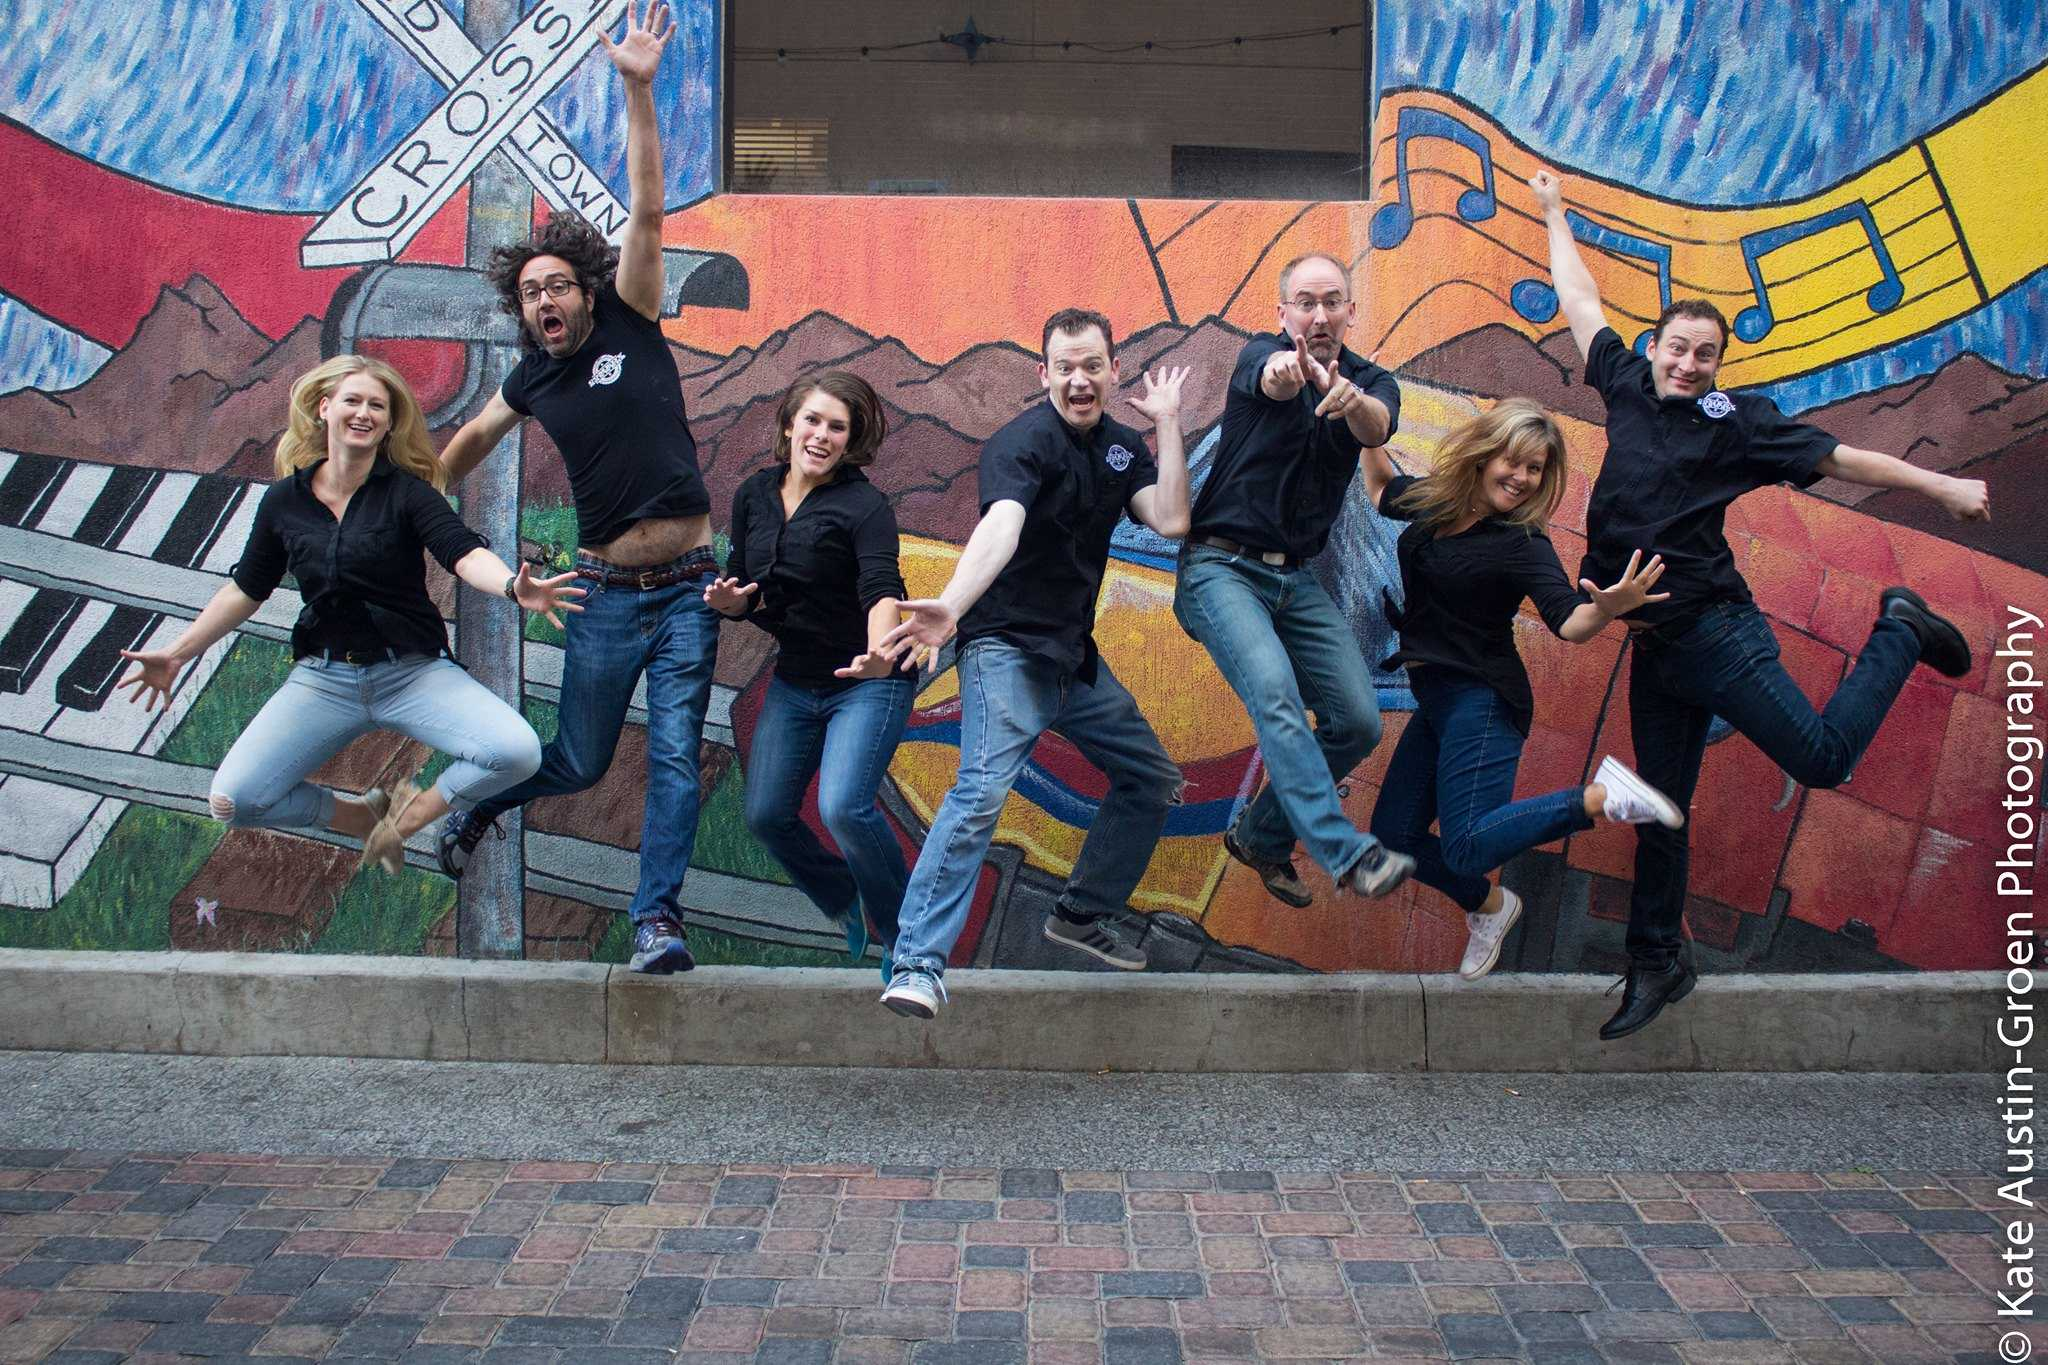 Members of the Comedy Brewers jumping up in smiles in front of Old Town mural